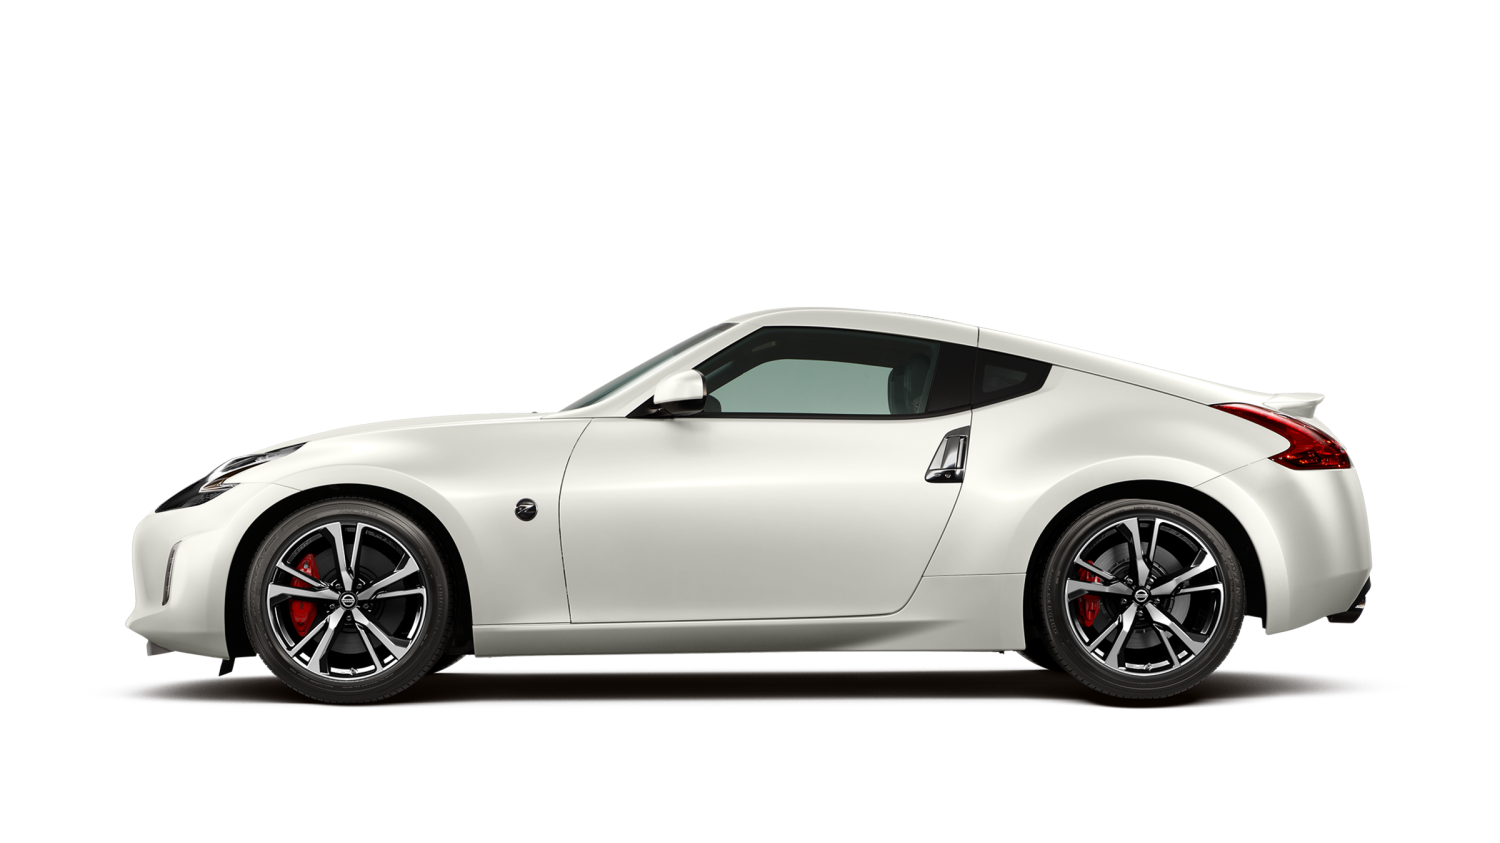 61 The Best Nissan 2019 Z Pictures